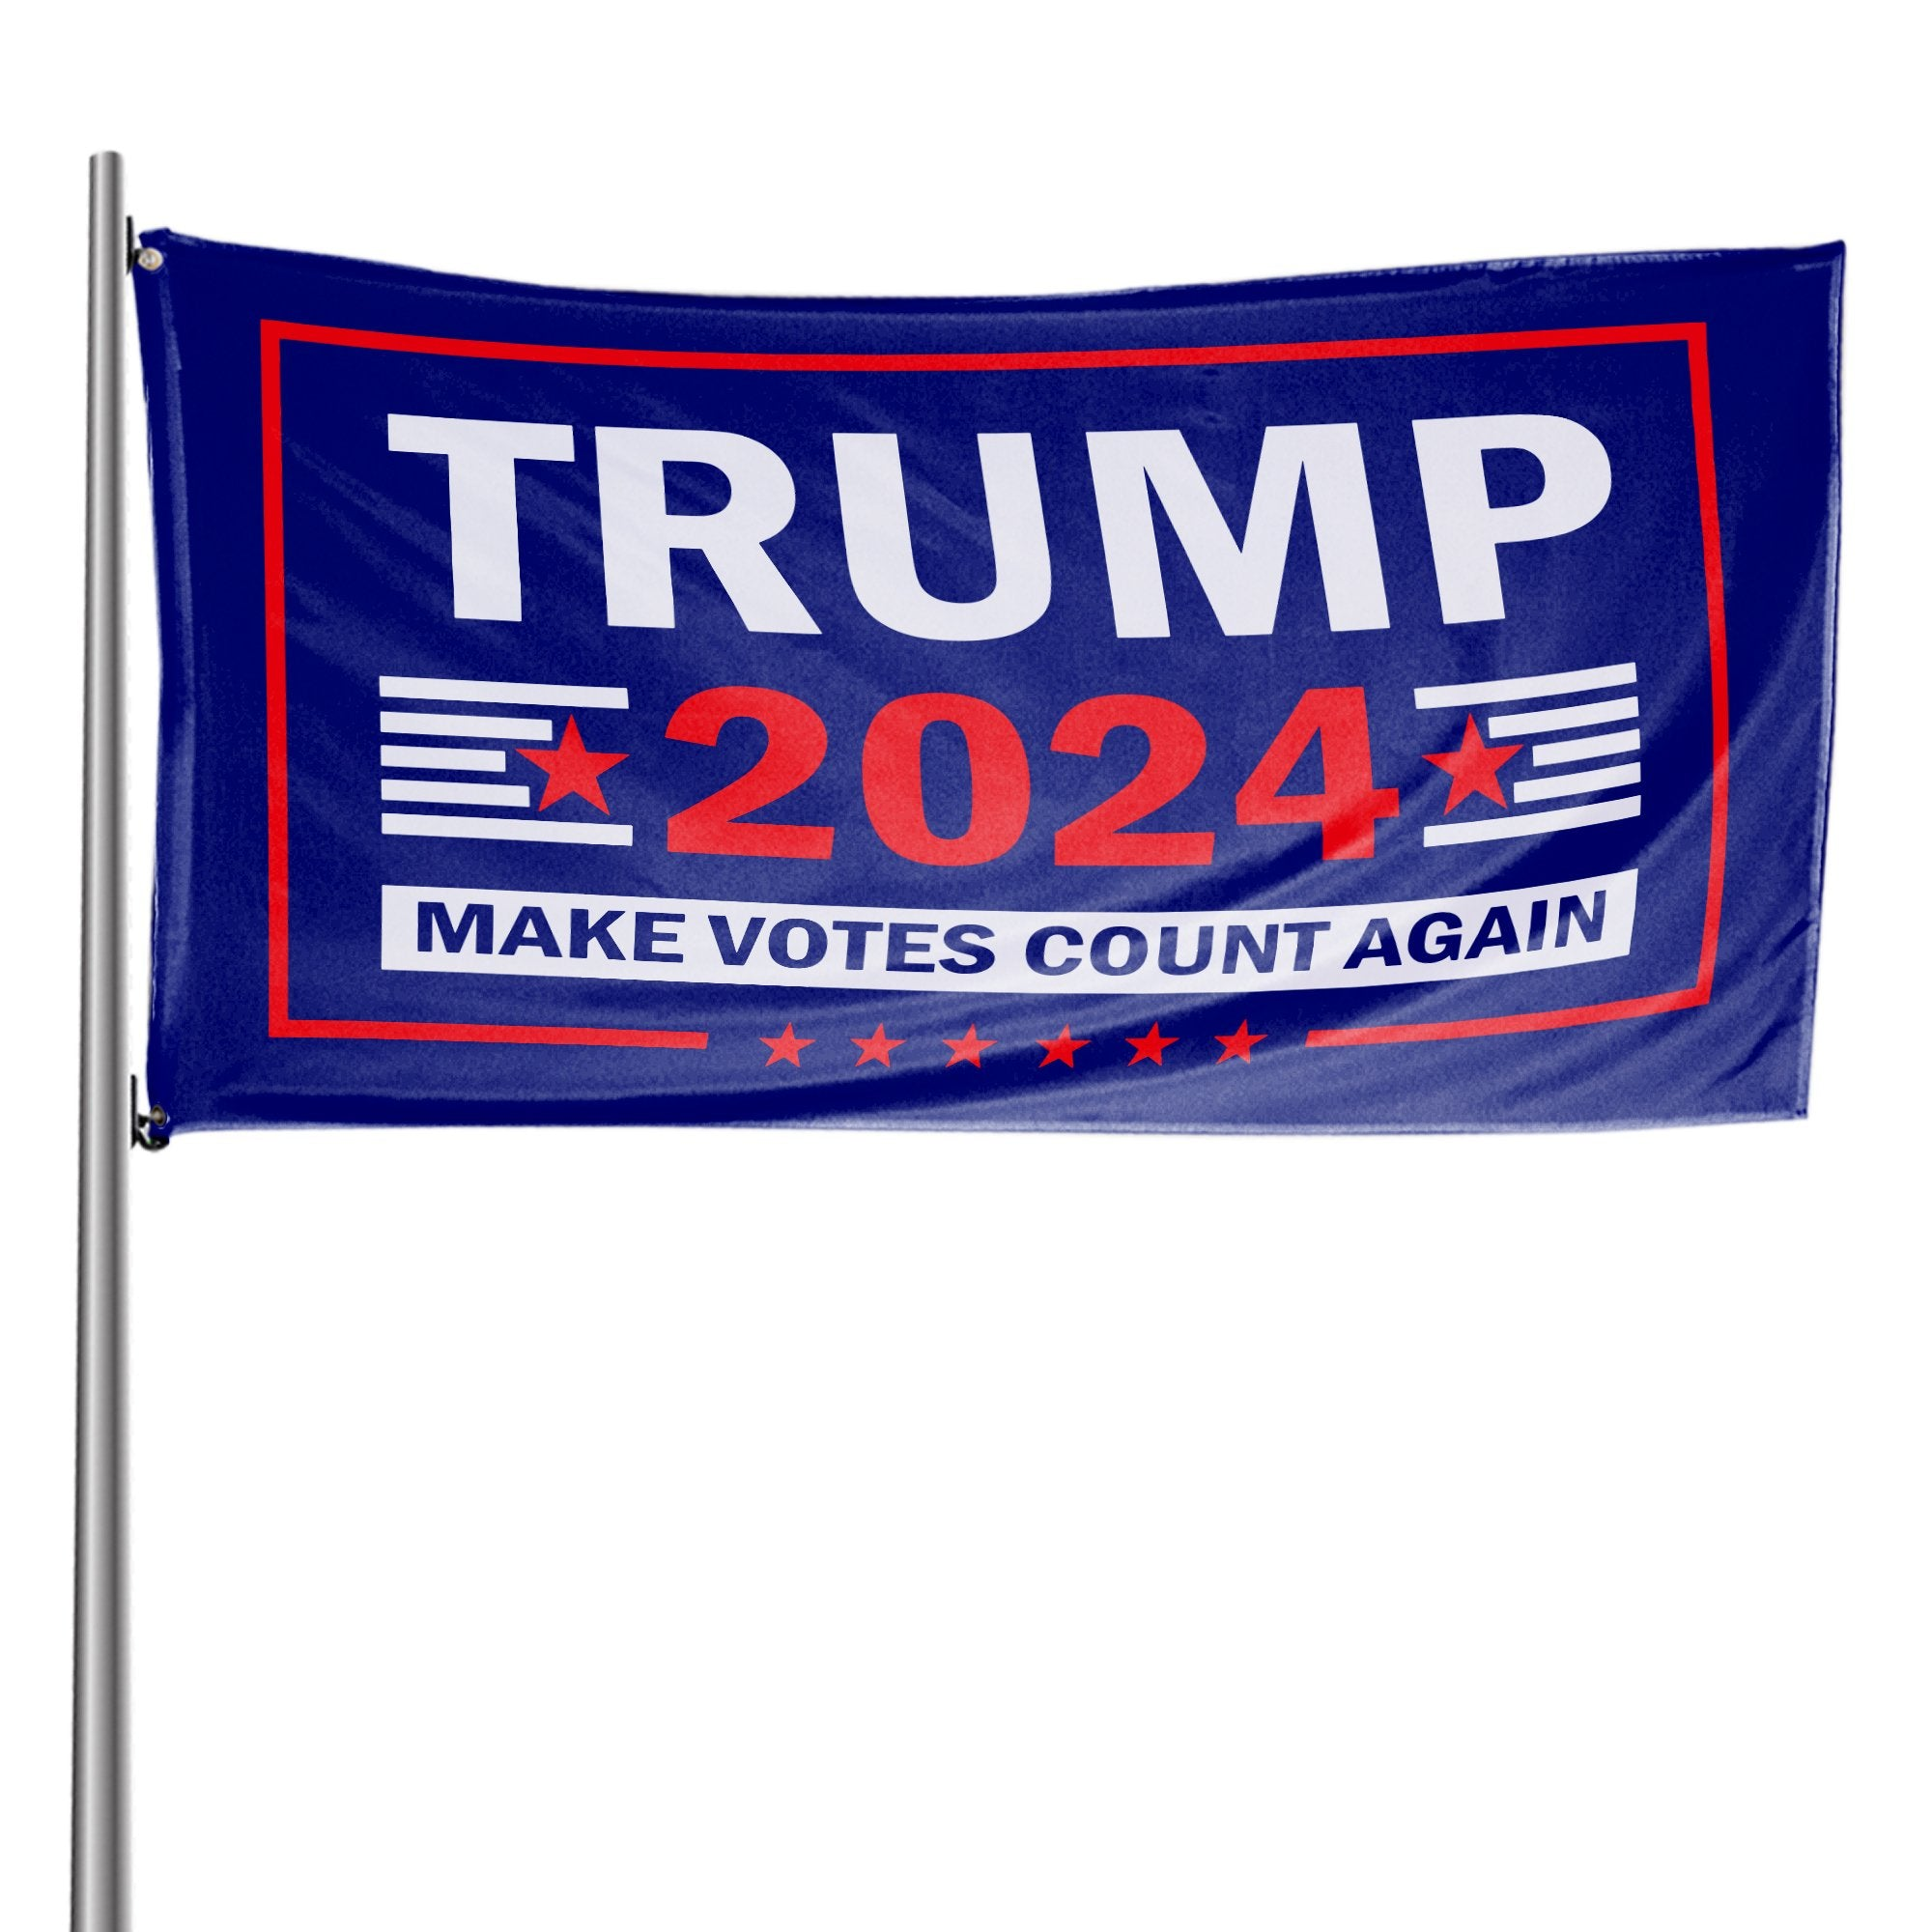 Trump 2024 Make Votes Count Again & Florida For Trump 3 x 5 Flag Bundle